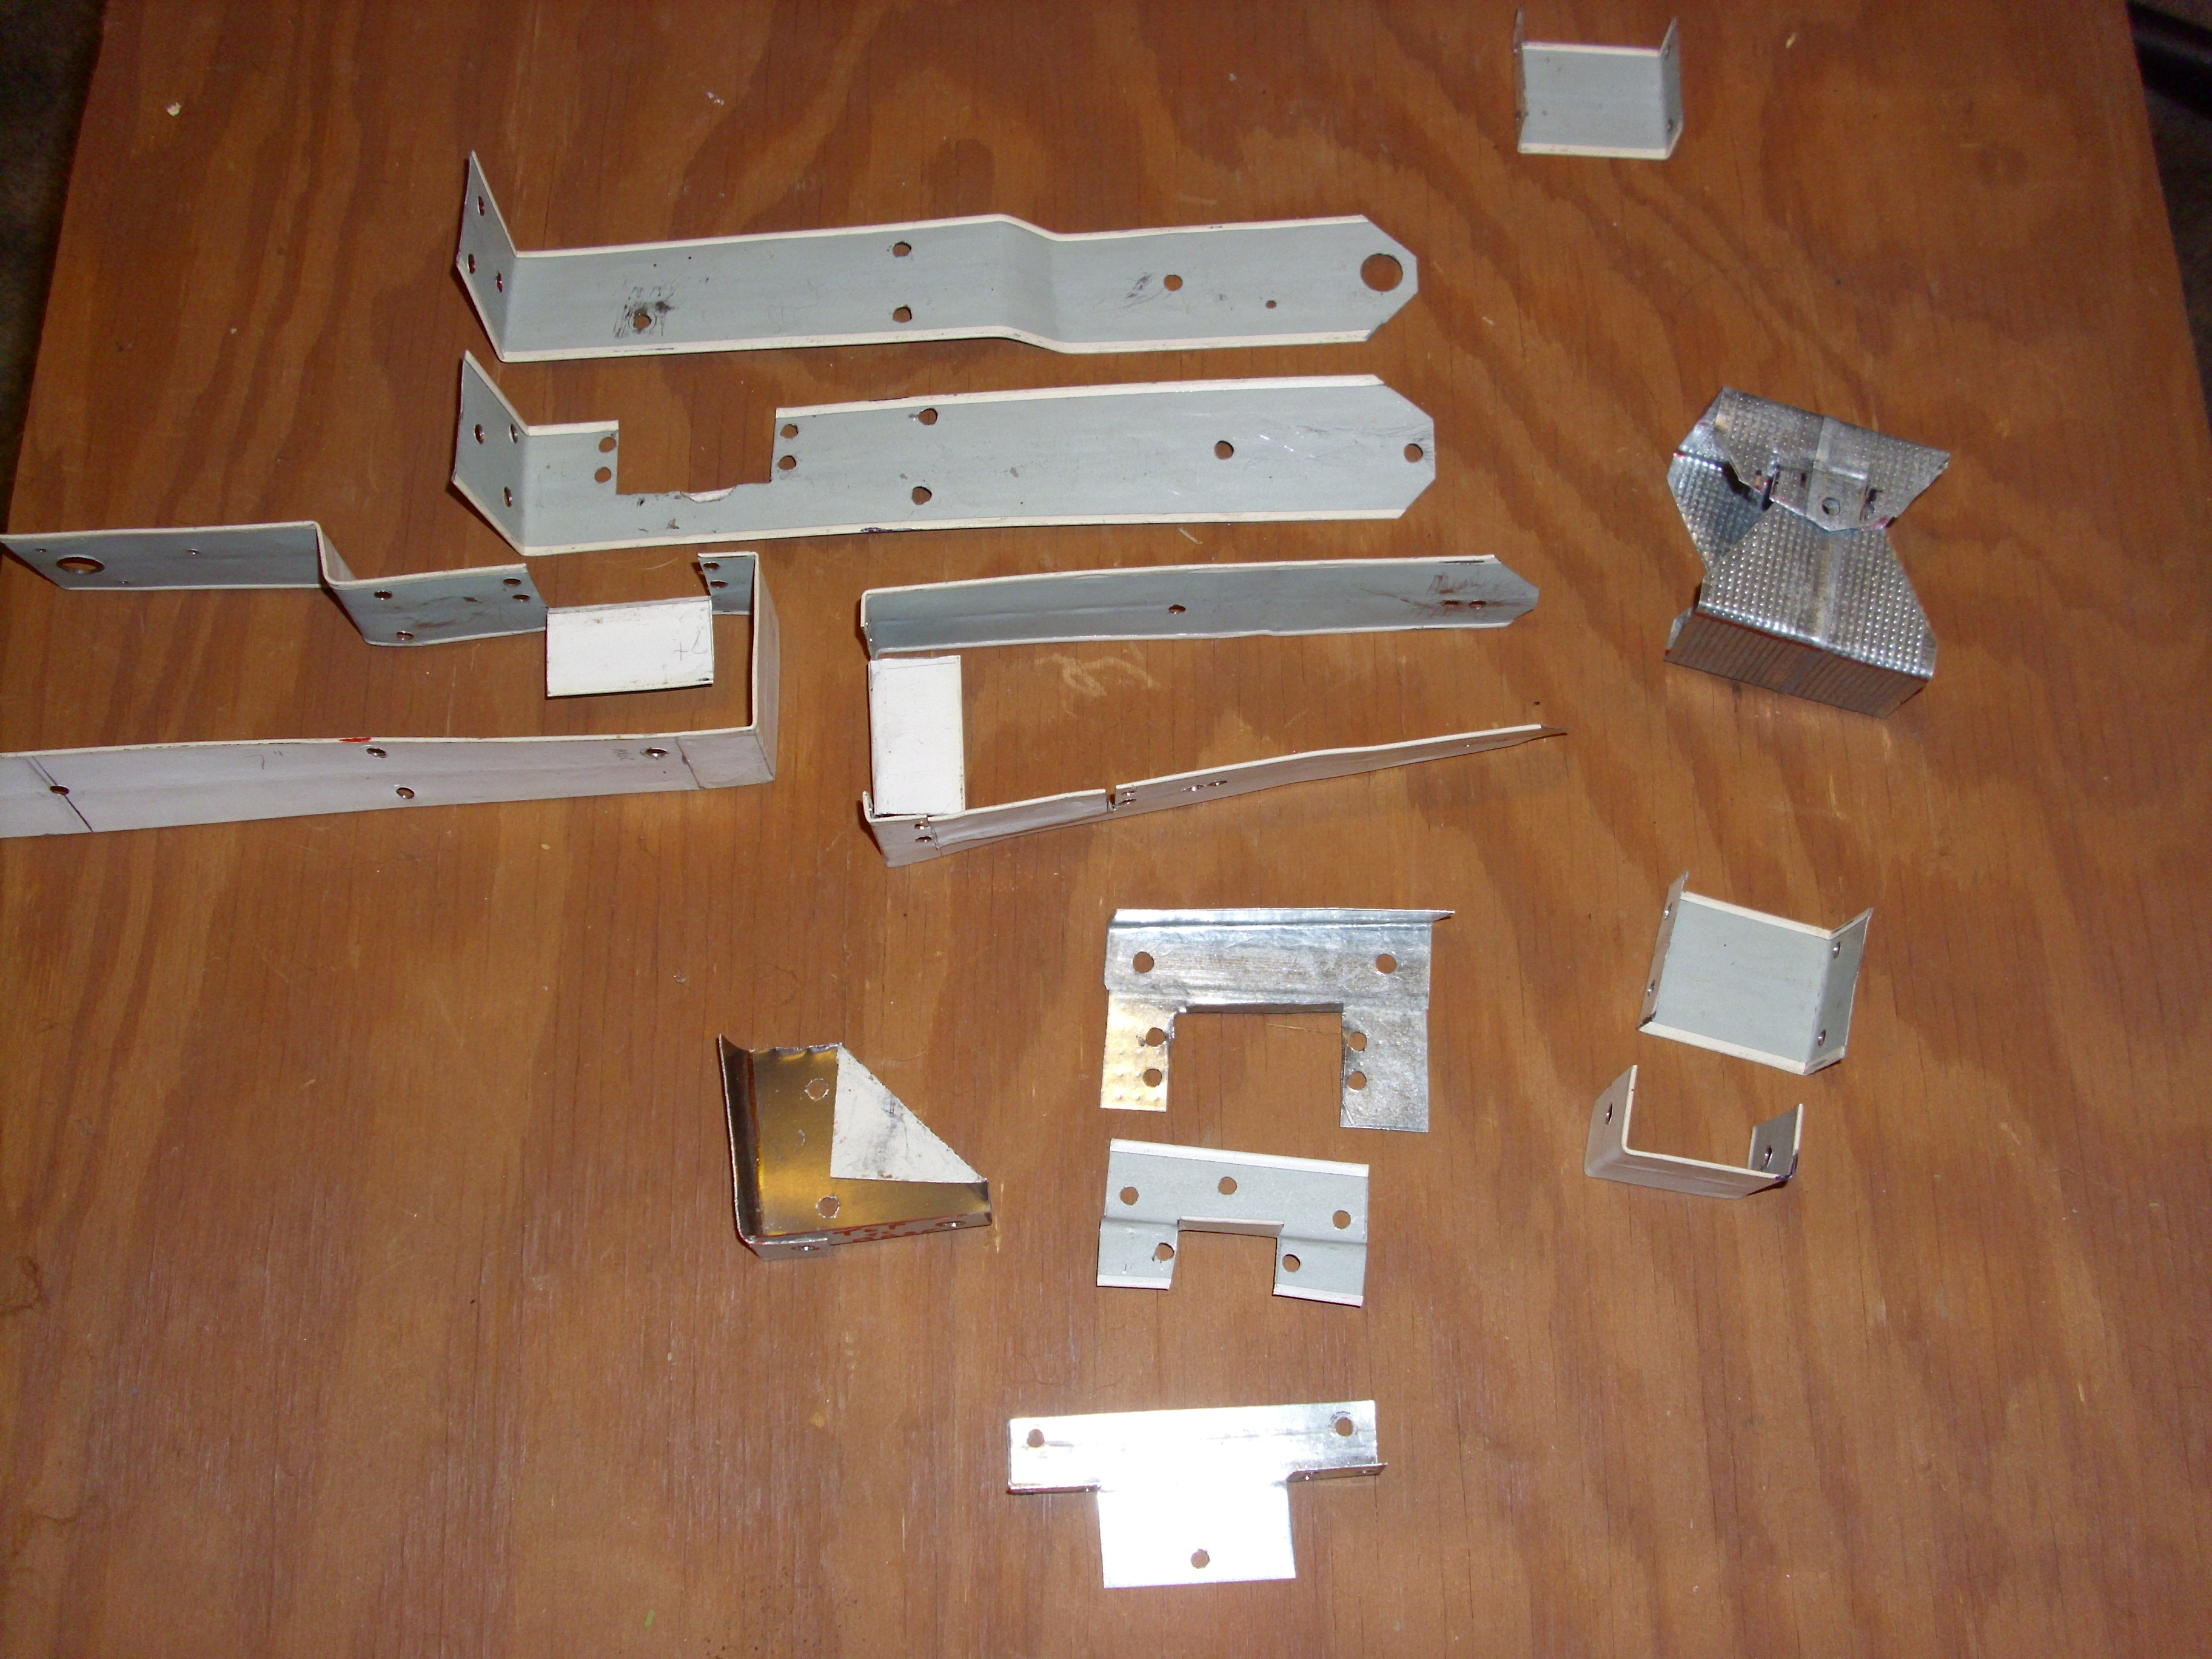 Picture of Brackets and Holders for Servos and Motors